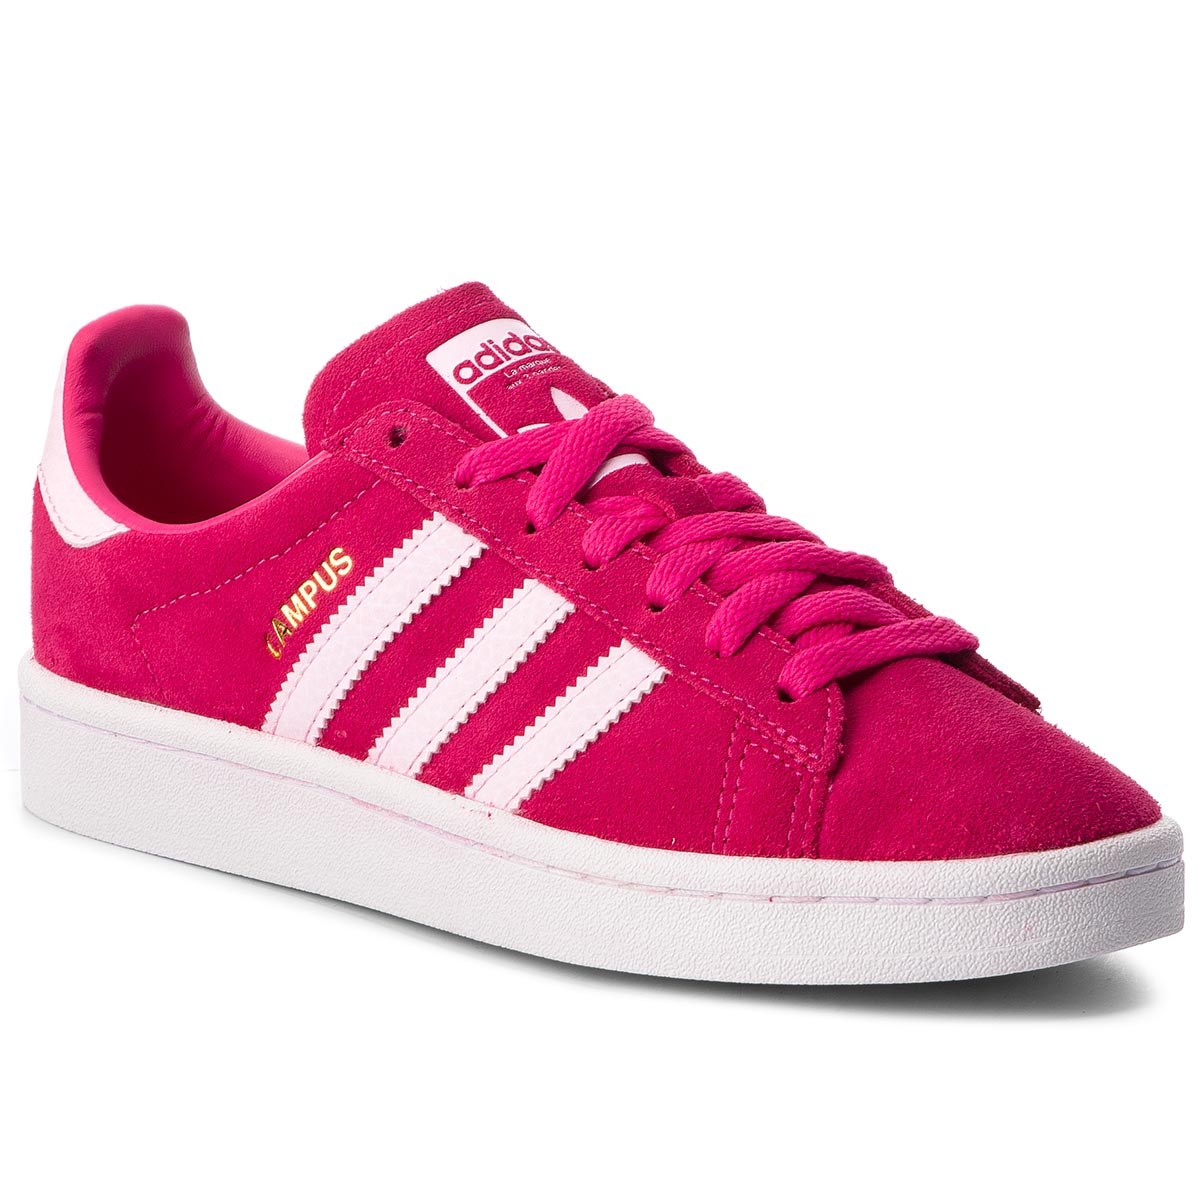 Topánky adidas - Campus J B41948 Remag/Clpink/Clpink